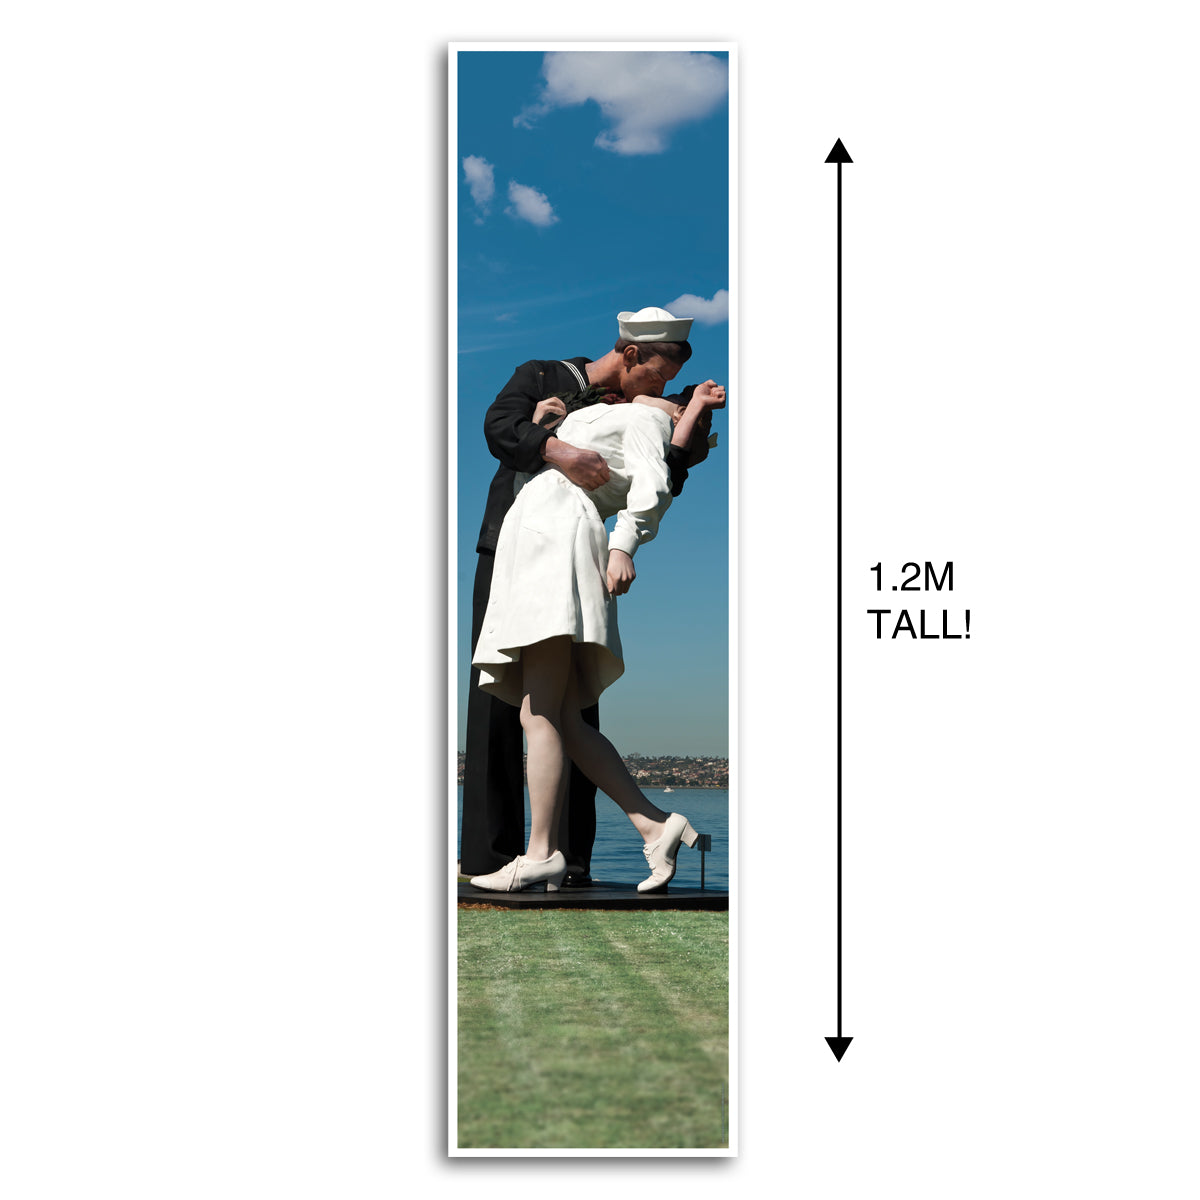 VJ Day Kissing Sailor Times Square Portrait Wall & Door Banner Decoration - 1.2m